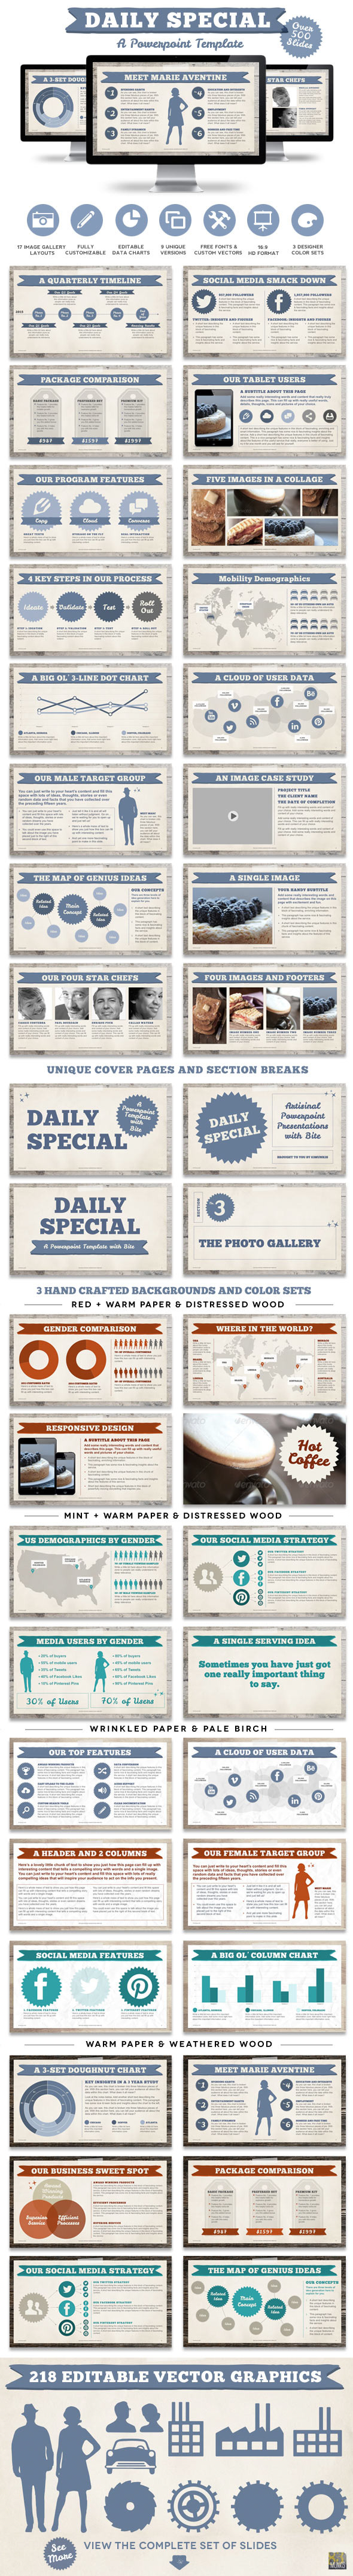 Daily Special Powerpoint Presentation Template - Creative PowerPoint Templates